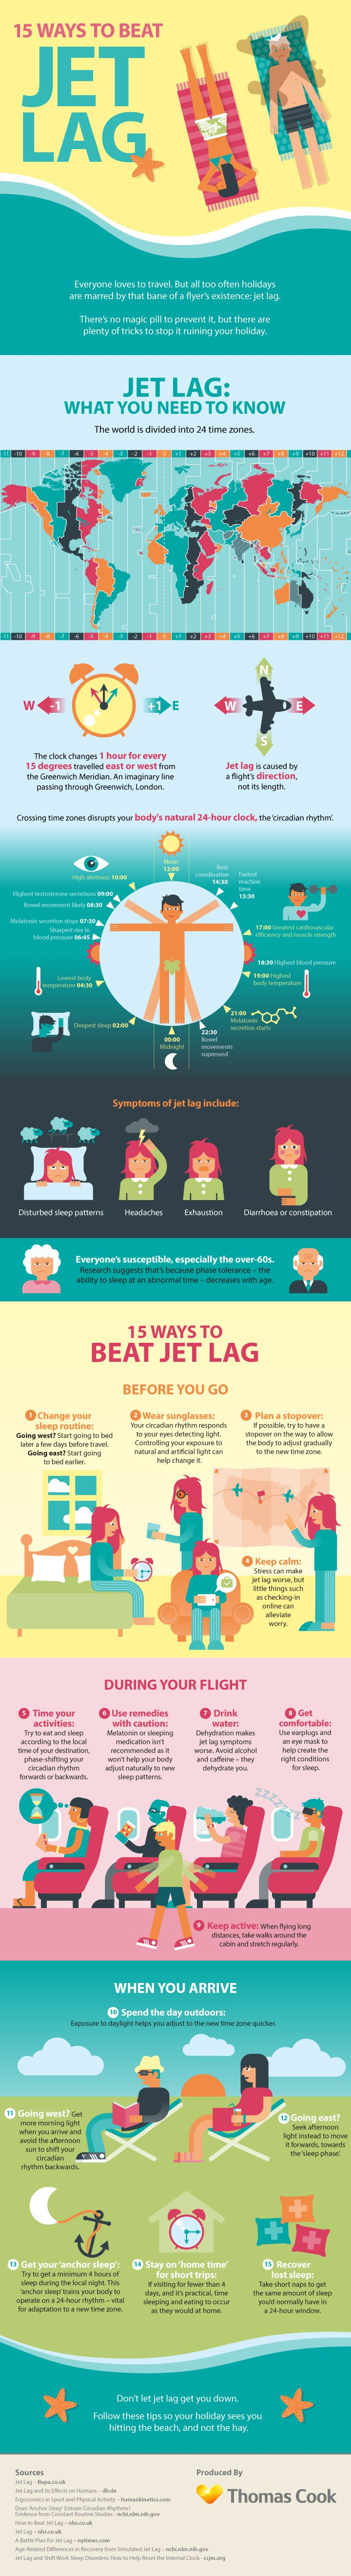 How to beat Jet lag via Thomas Cook